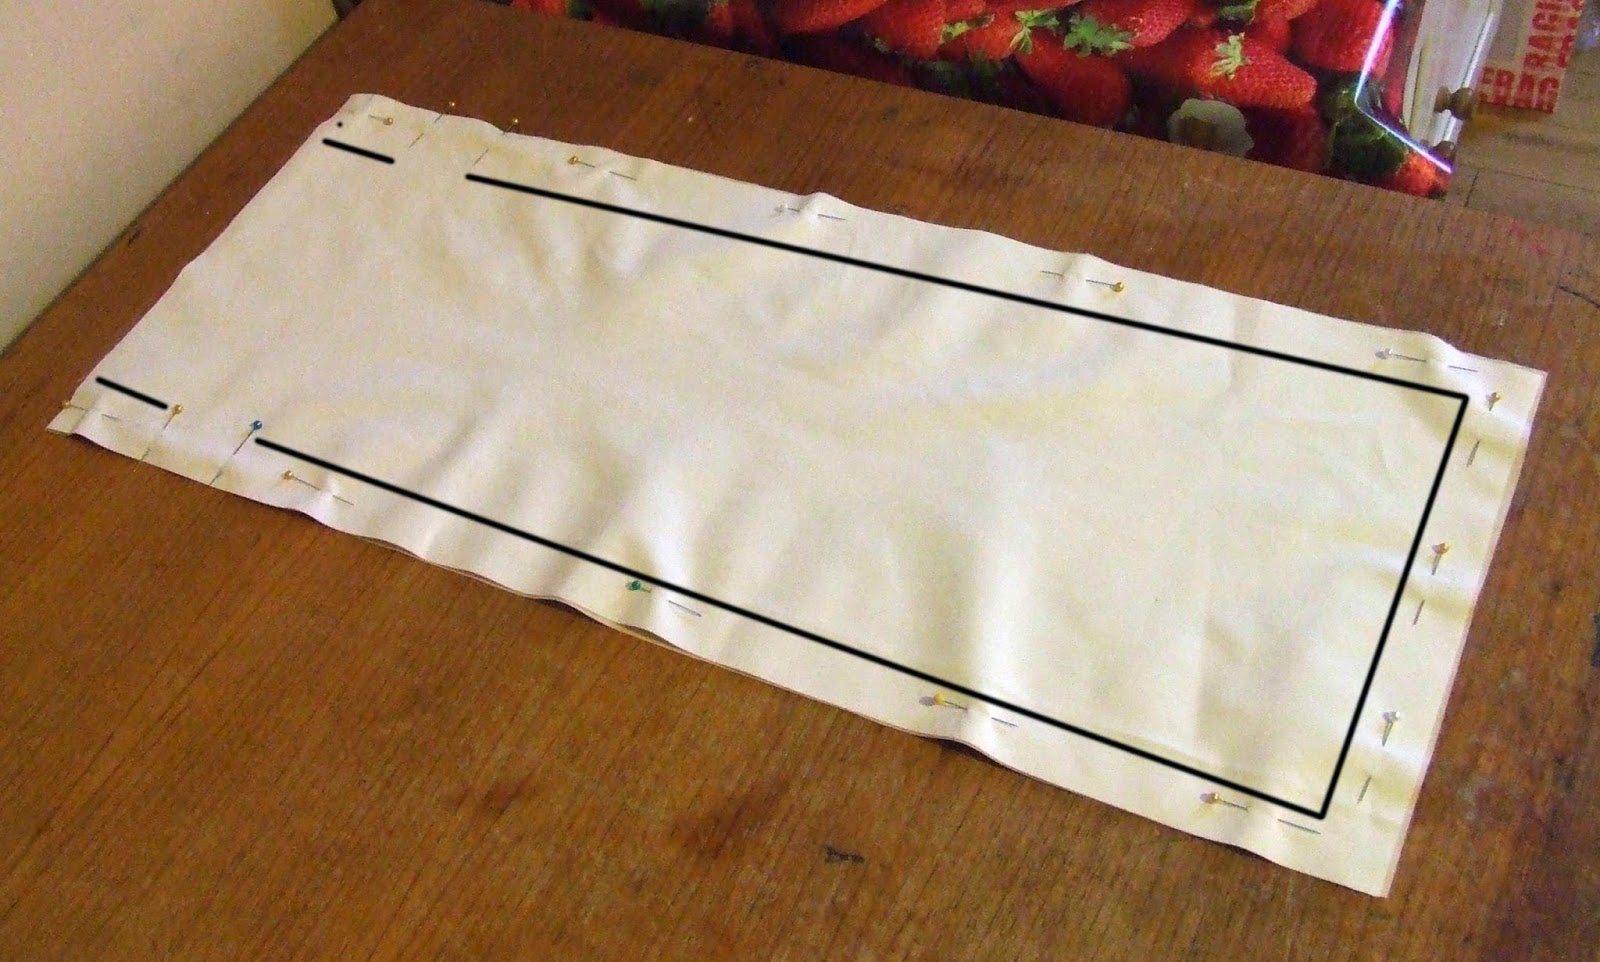 Sew the edges of the bag leaving gap for string